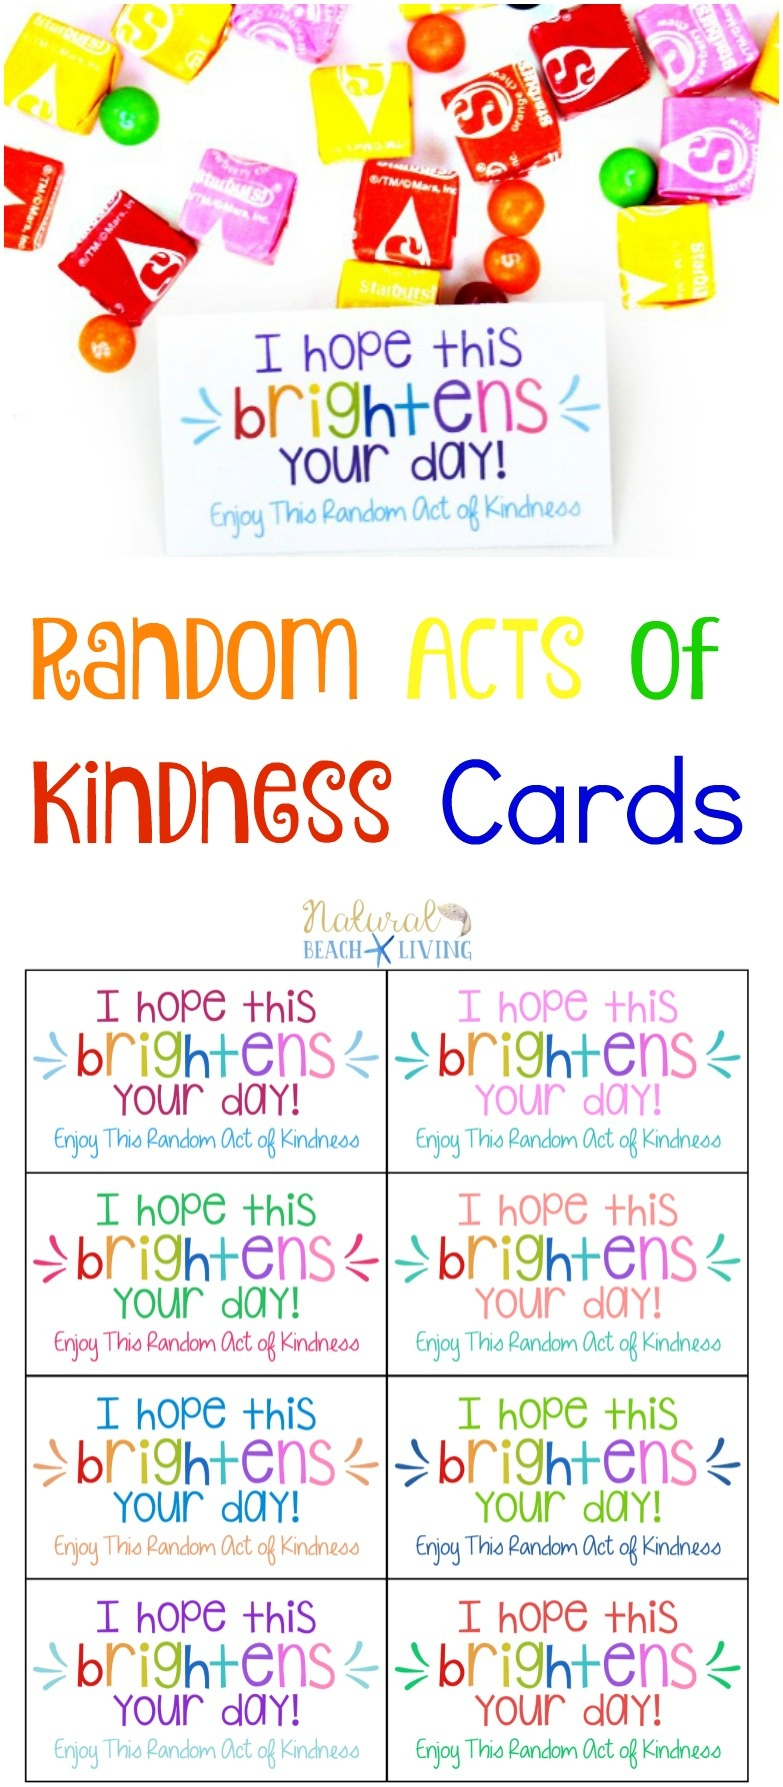 The Best Random Acts Of Kindness Printable Cards Free - Natural - Free Printable Kindness Cards